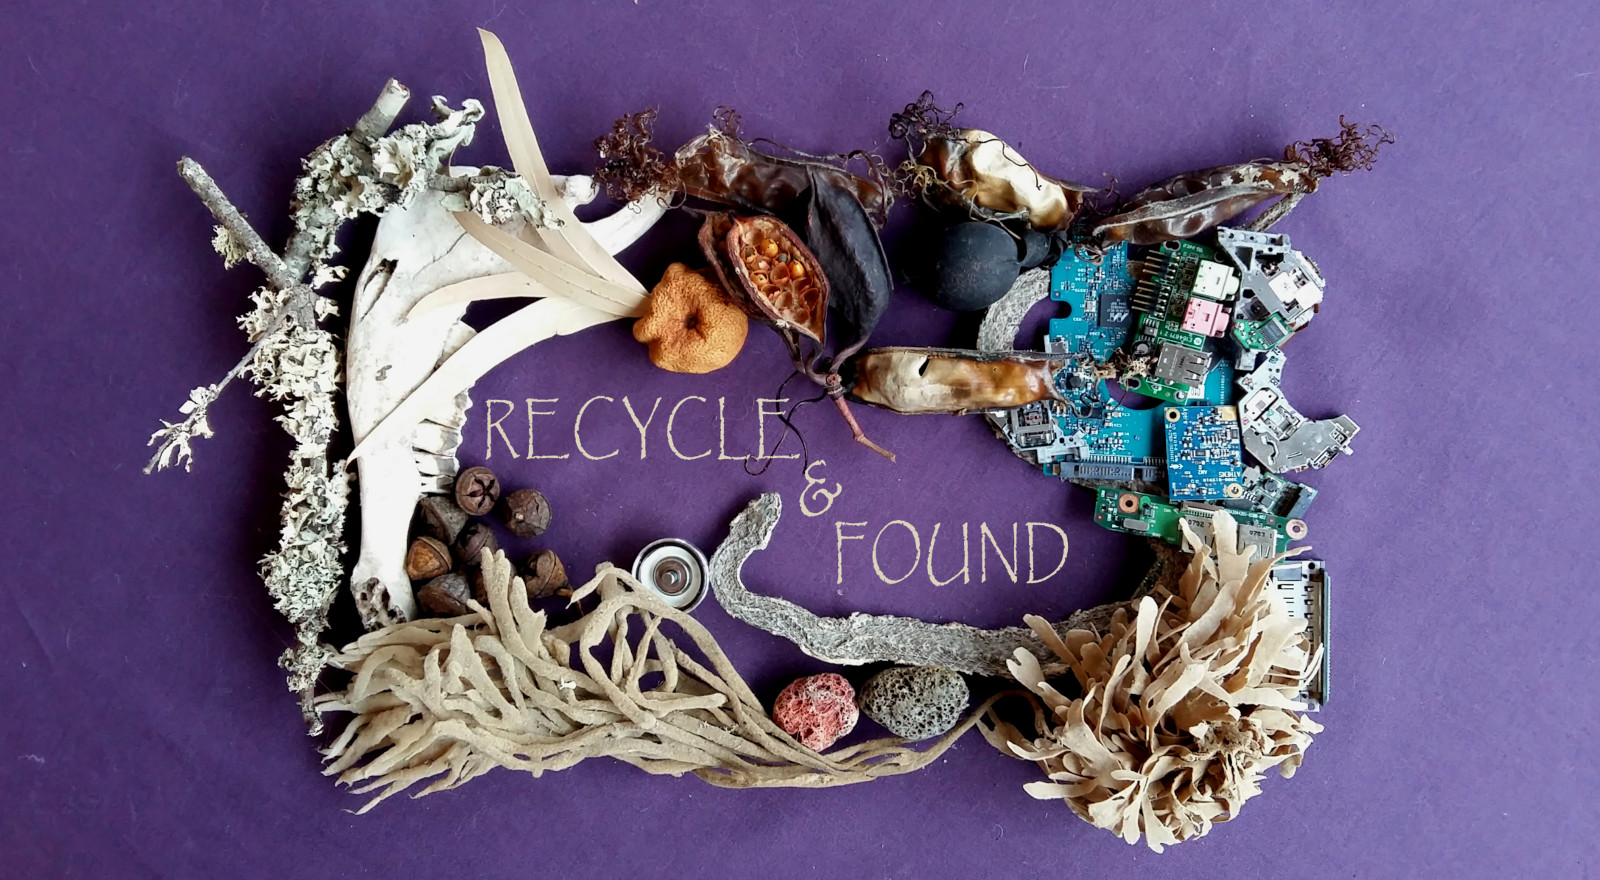 Recycle & Found by Lindsey Piper